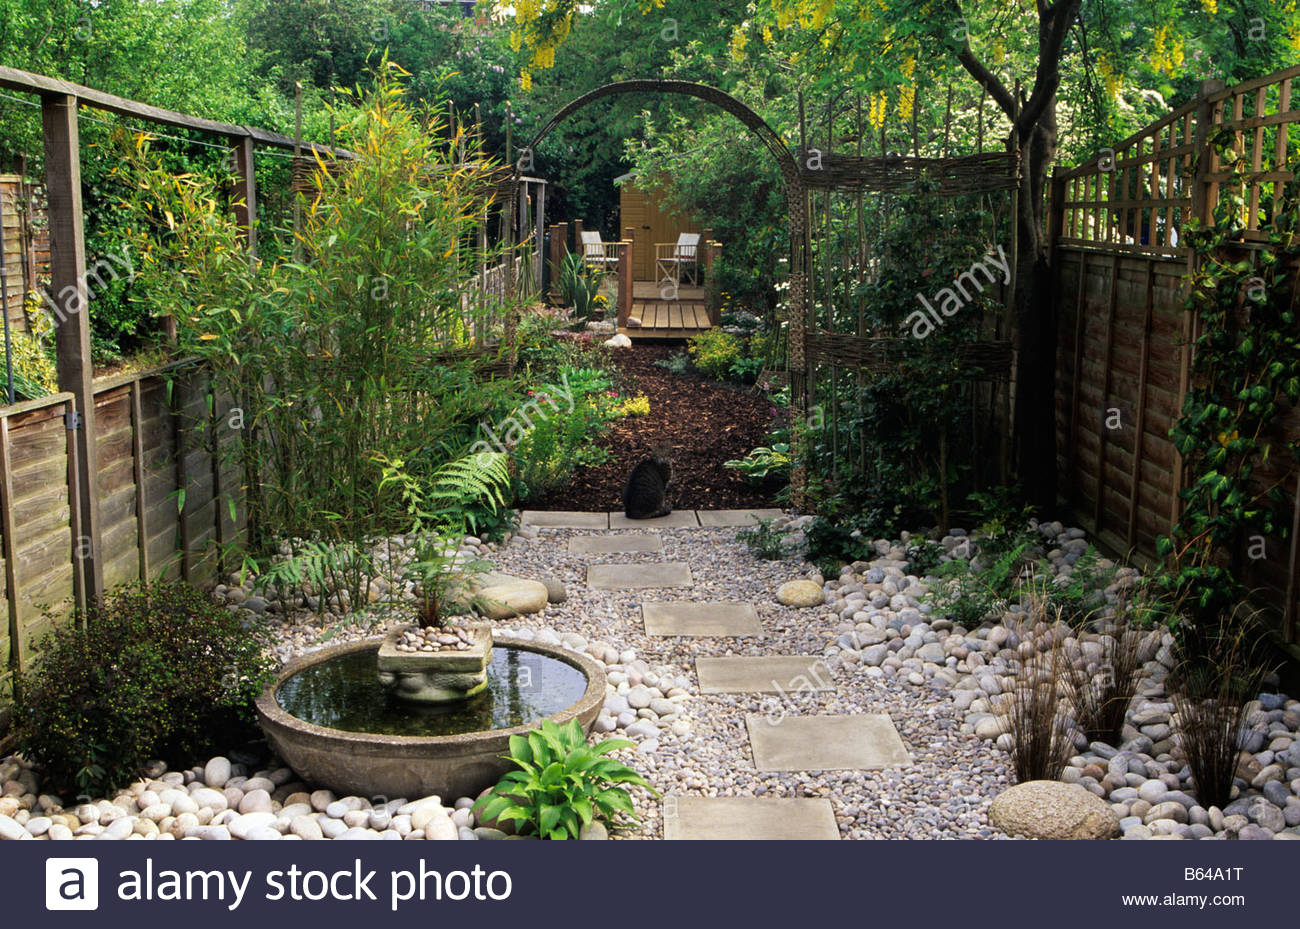 Merveilleux Hallowell Rd Middx Design Alan Titchmarsh Japanese Style Garden With Arch  Pebbles Stones Cat Wooden Fence Stepping Stones Water